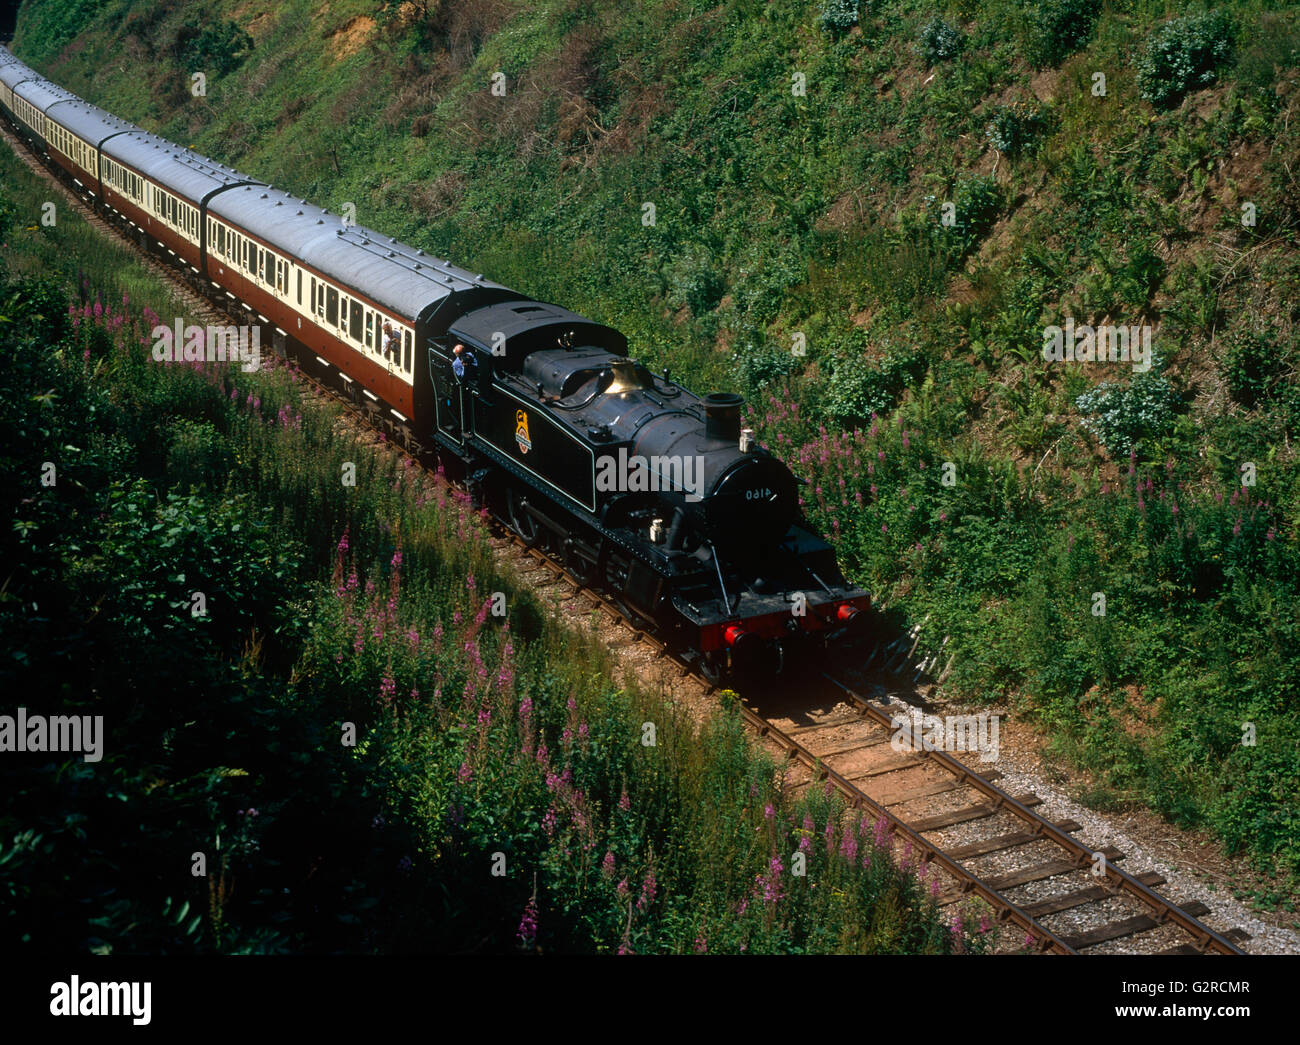 Steam train on the railway, outside. - Stock Image